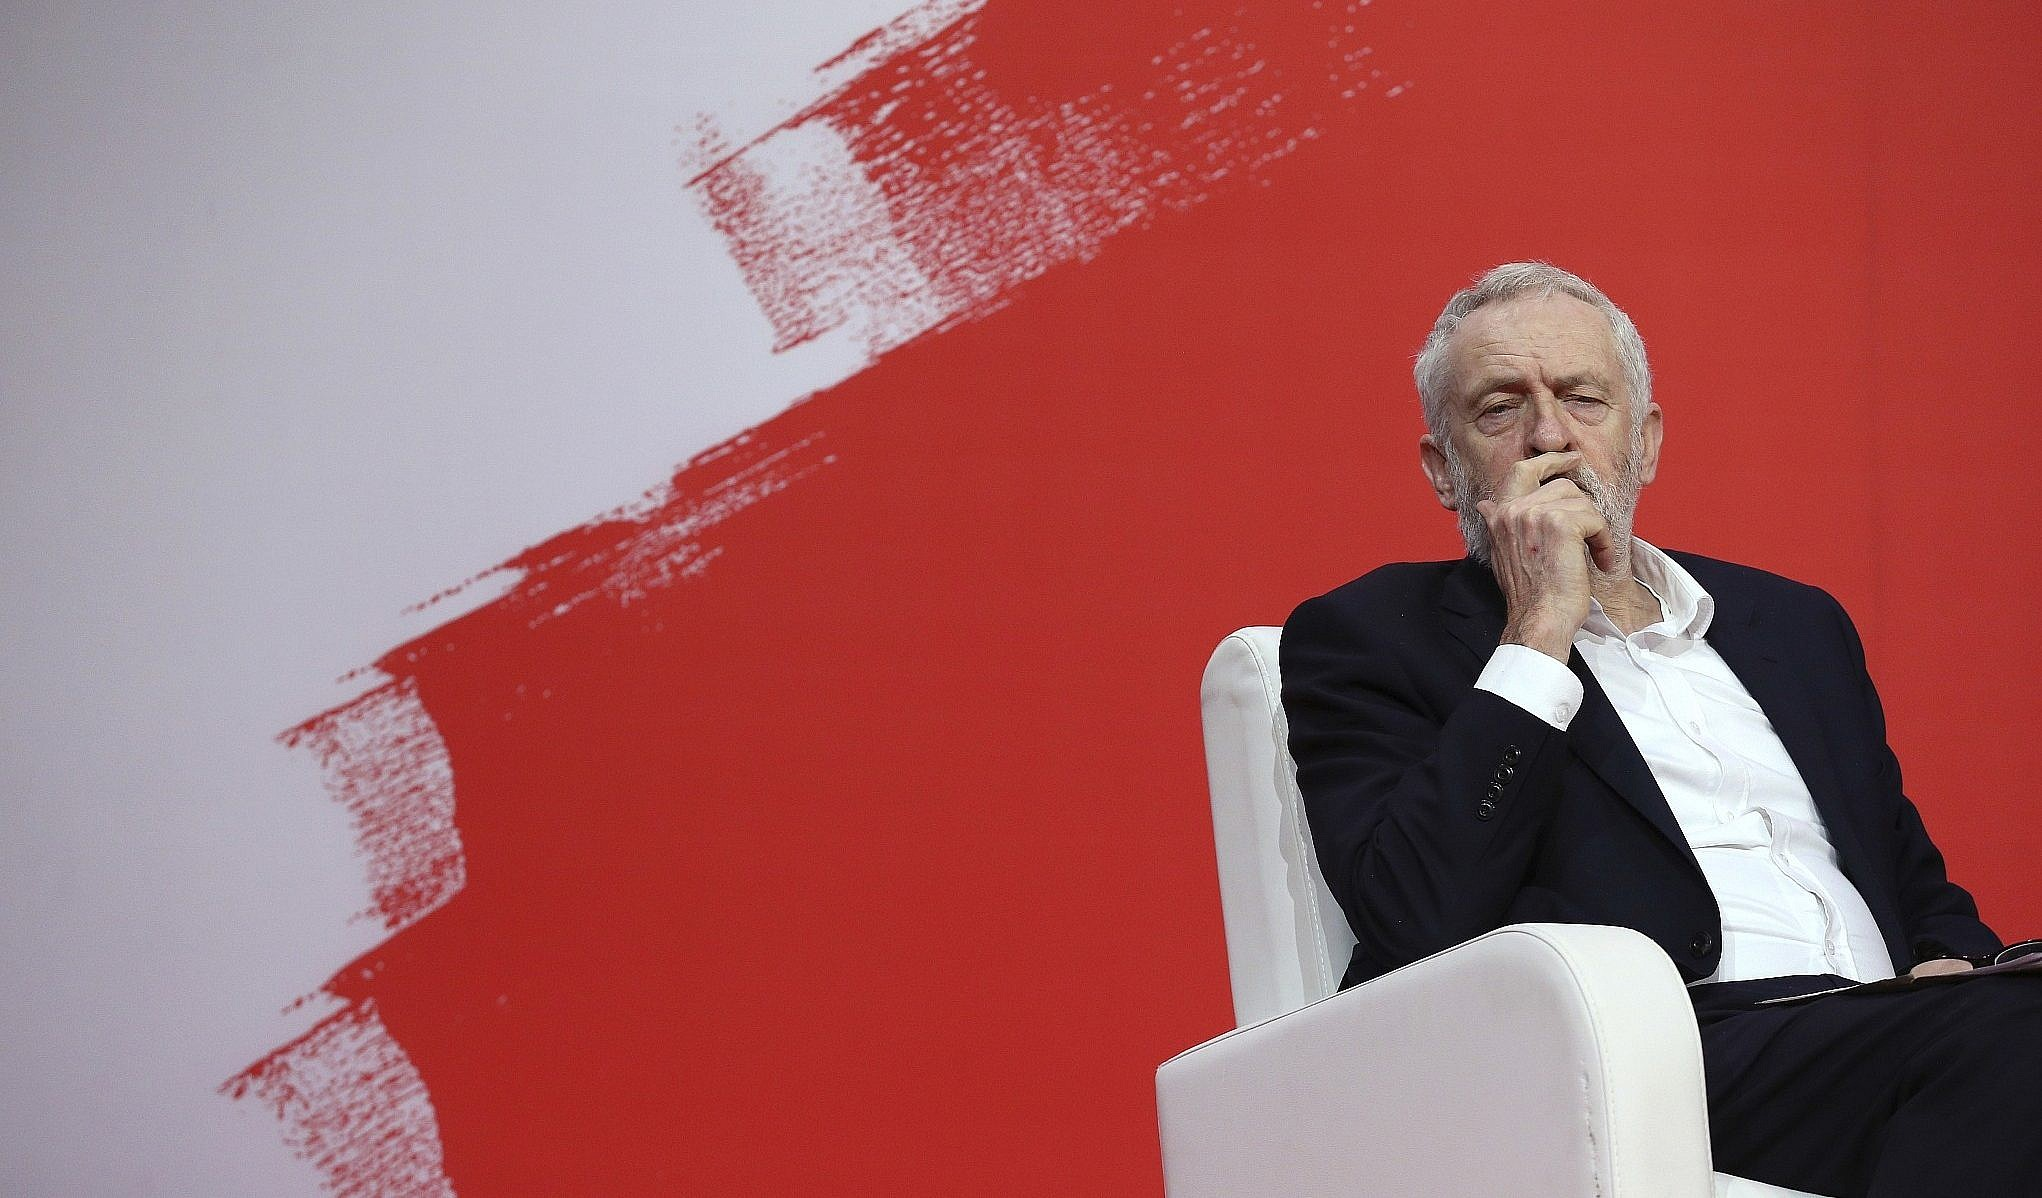 Jeremy Corbyn, leader of Britain's Labour Party, listens to speakers during the Party of European Socialists Council in Lisbon, December 2 2017. (AP Photo/Armando Franca)